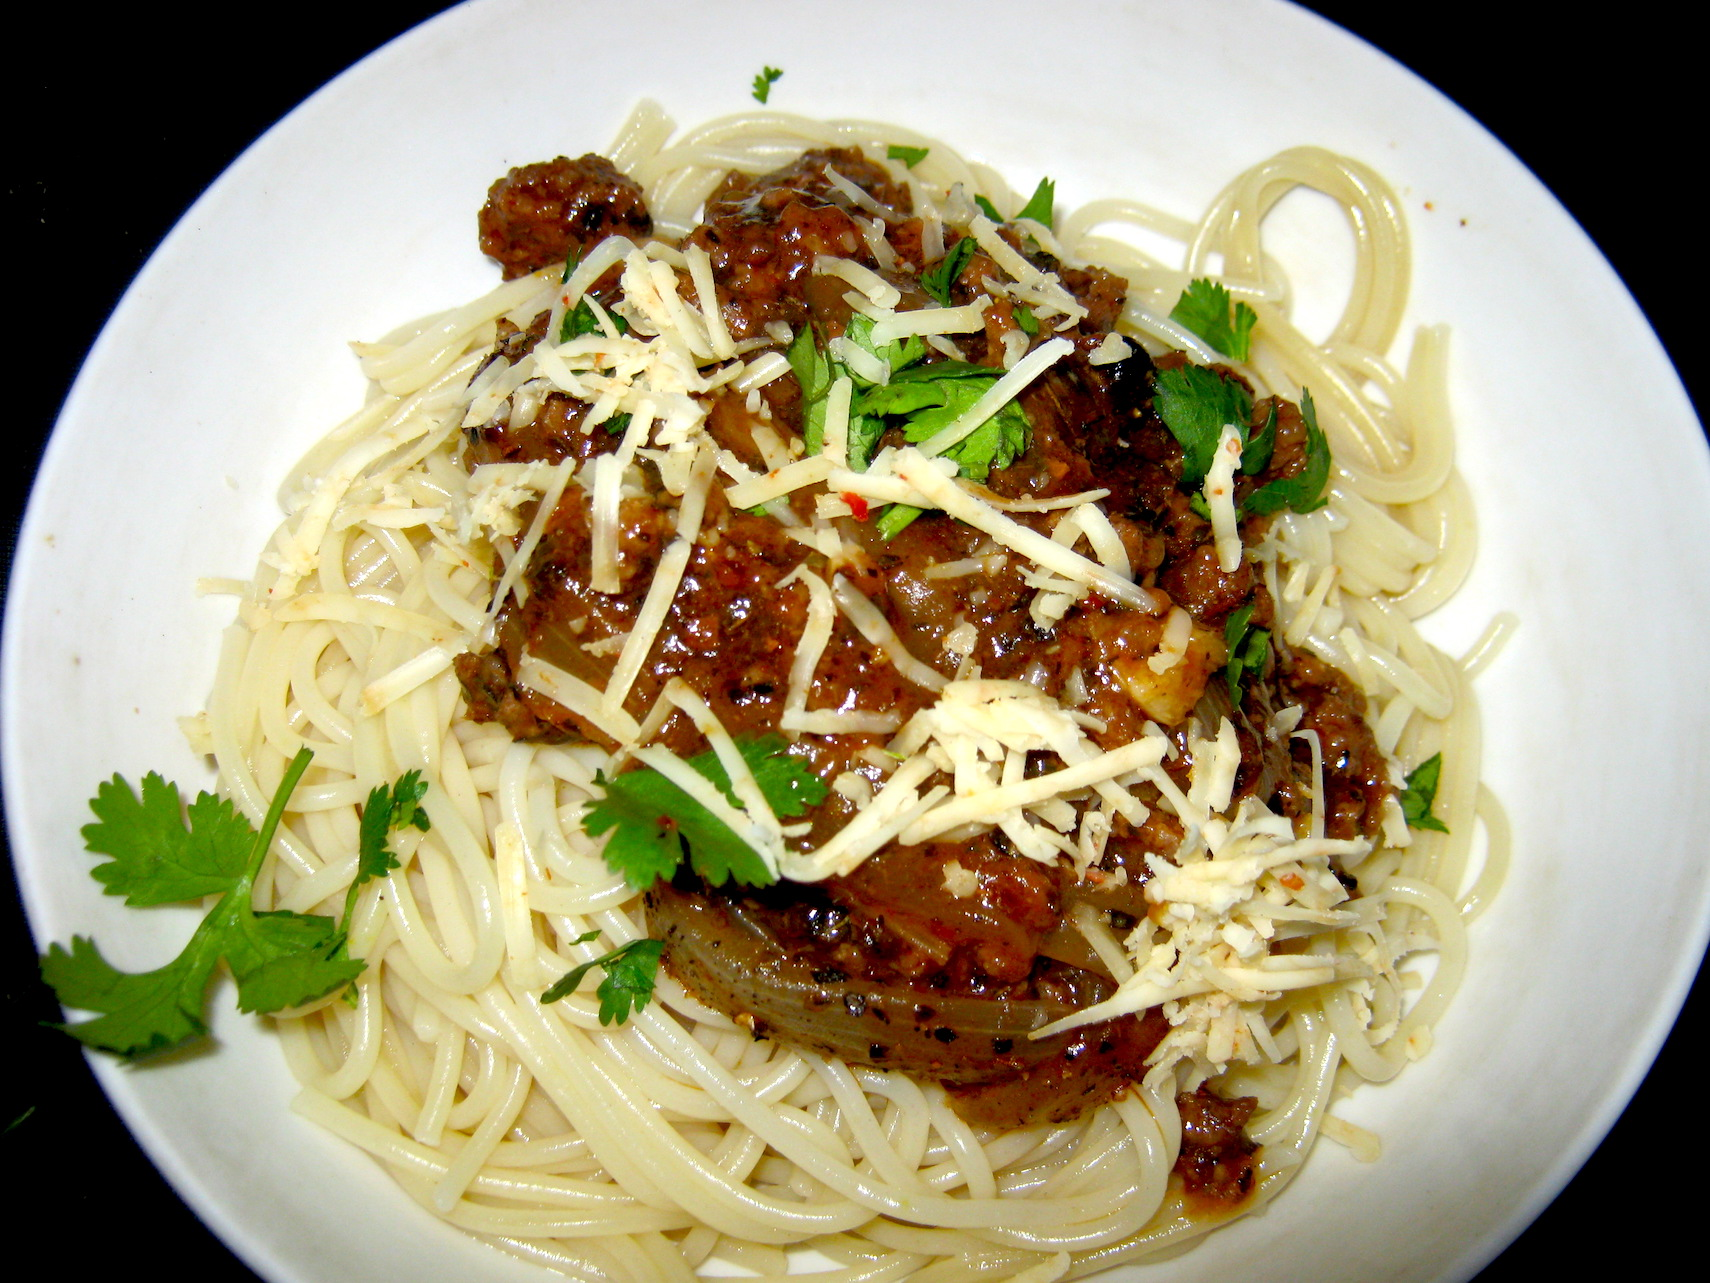 Spaghetti Bolognese garnished with freshly grated cheese and a few coriander leaves